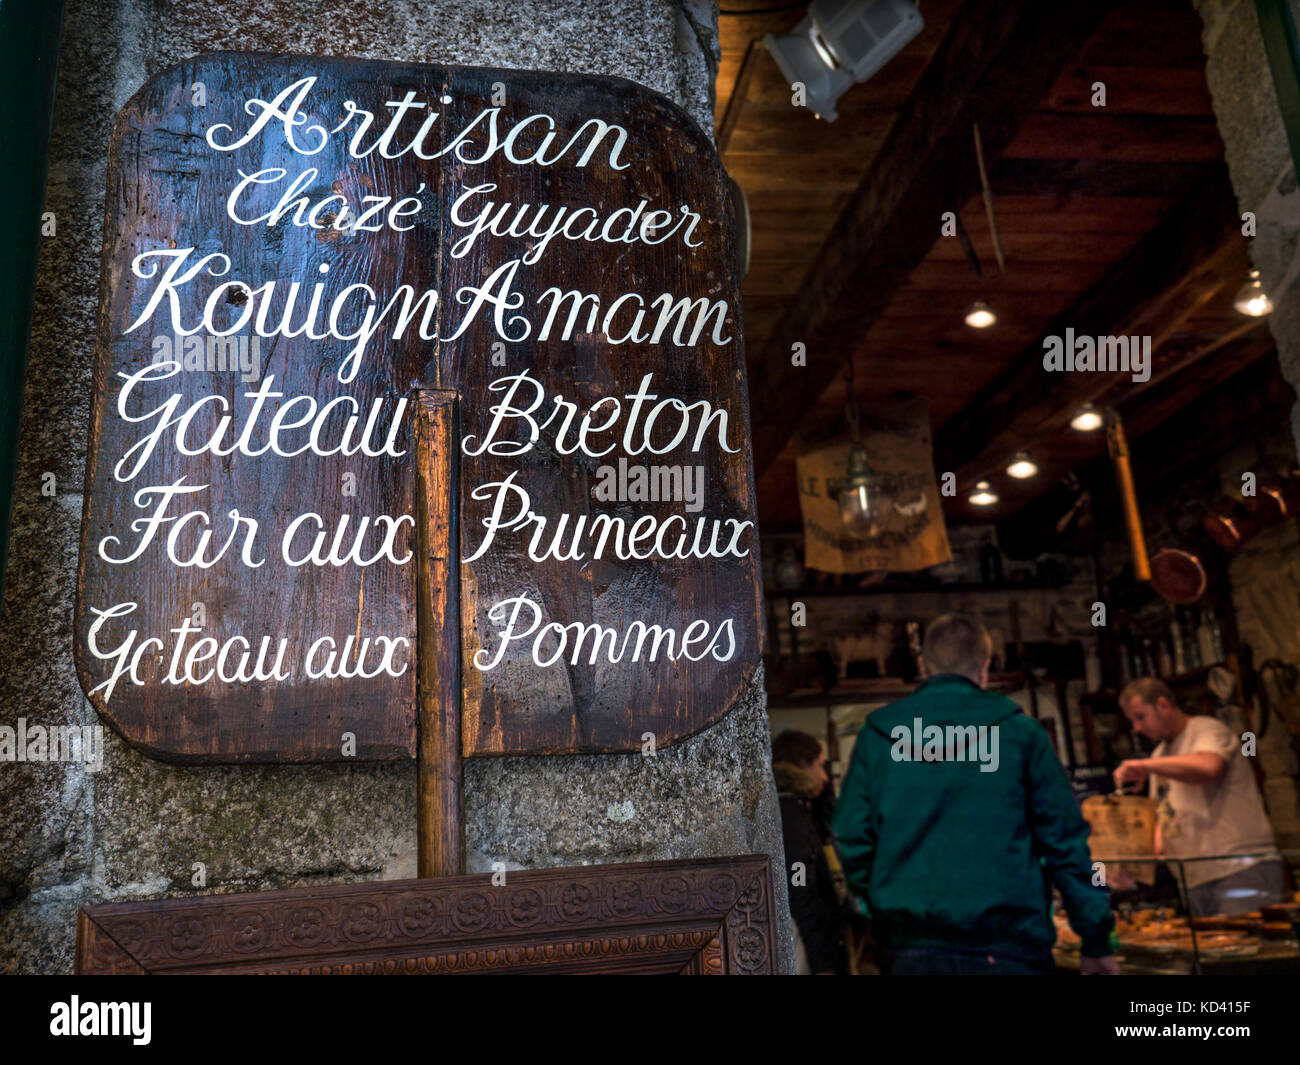 Artisan baker, rustic wooden sign made from old bakers shovel and interior of Chazè Guyader  Old Town Concarneau - Stock Image